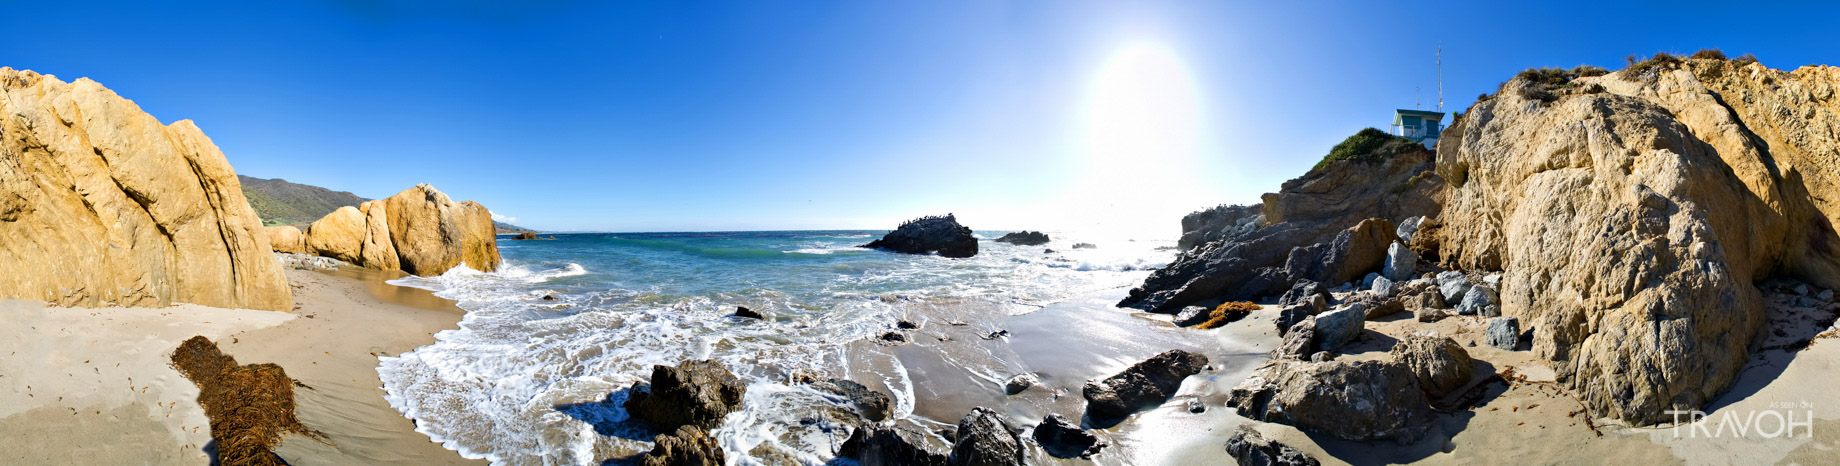 Leo Carillo State Beach – Exploring 10 of the Top Beaches in Los Angeles, California